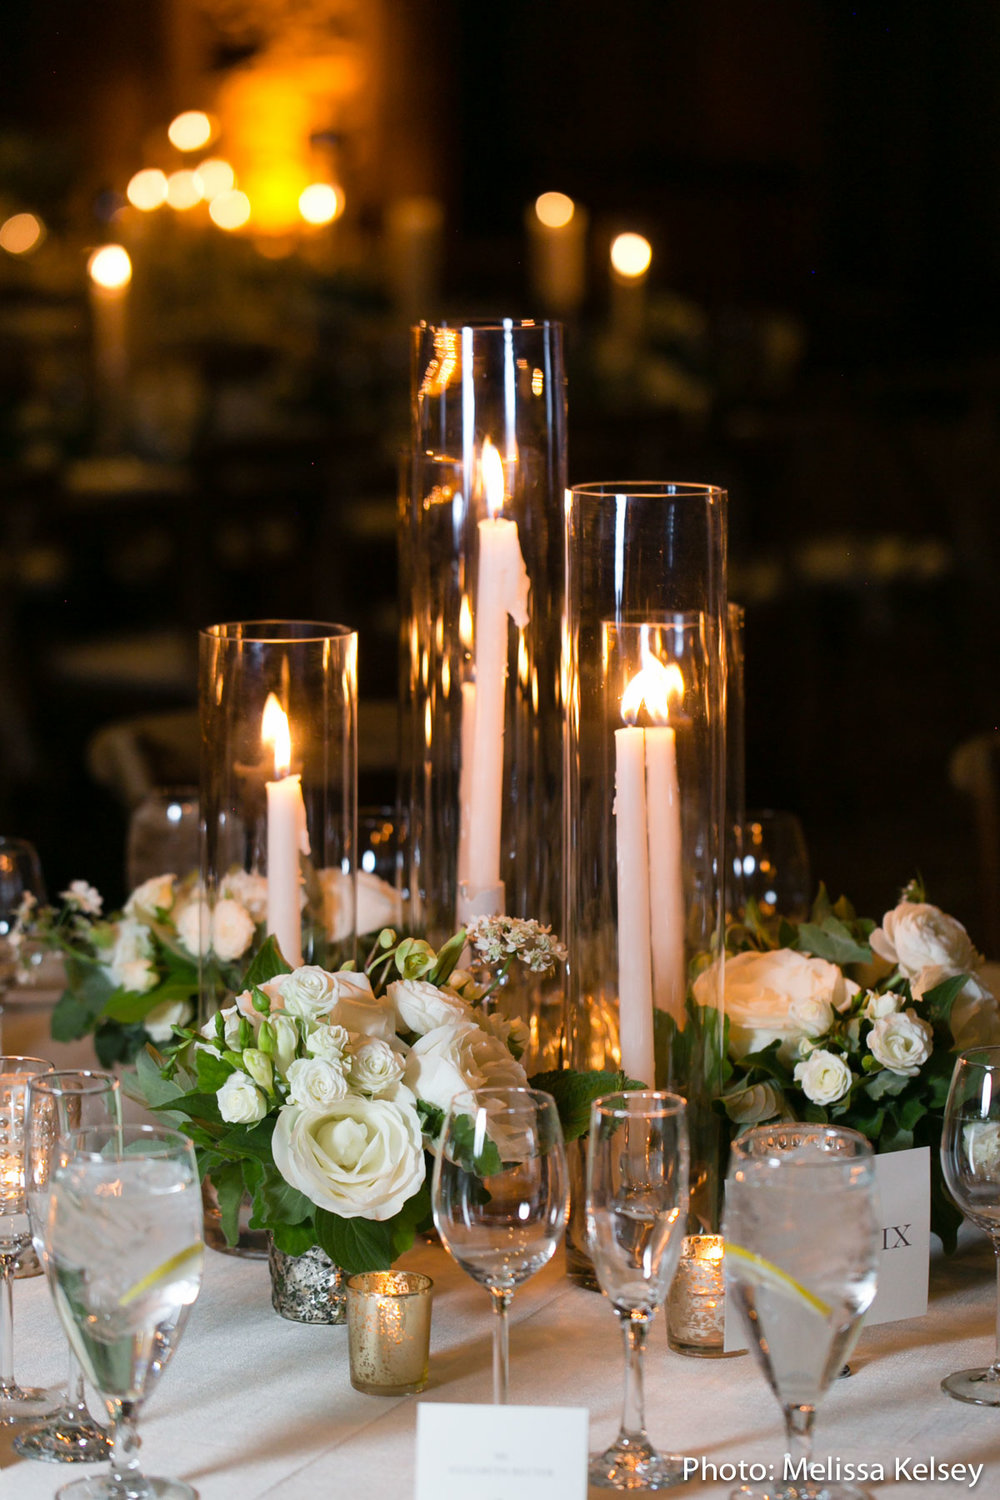 Best Park City Wedding Venue_Winter_Weddings_Stein_Eriksen_Lodge-48.jpg